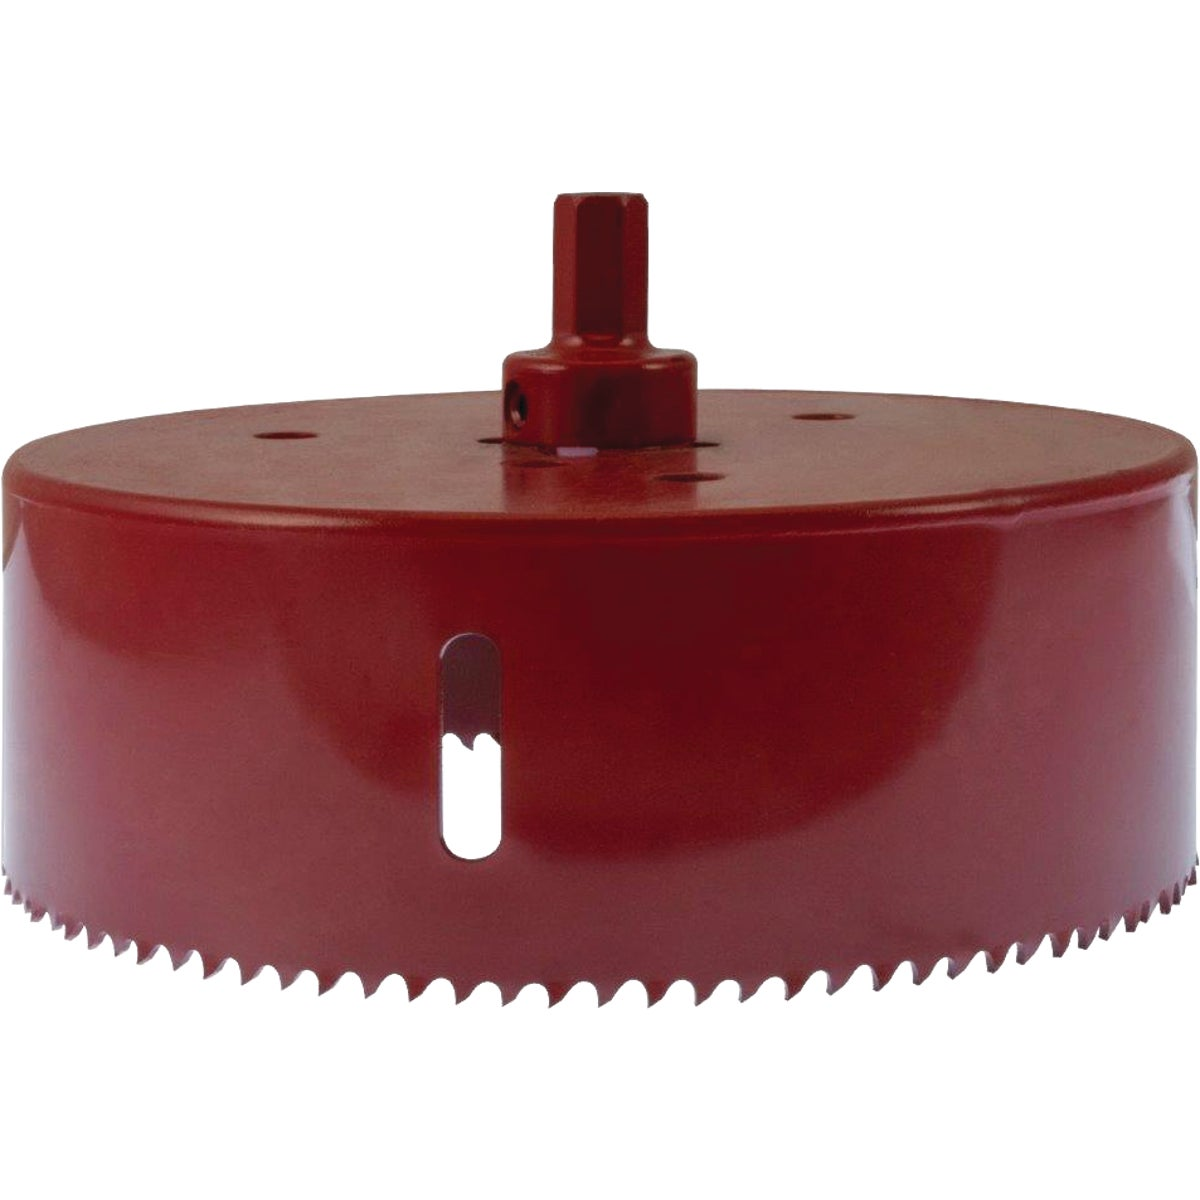 "6"" HOLE SAW - 333379 by M K Morse Co"